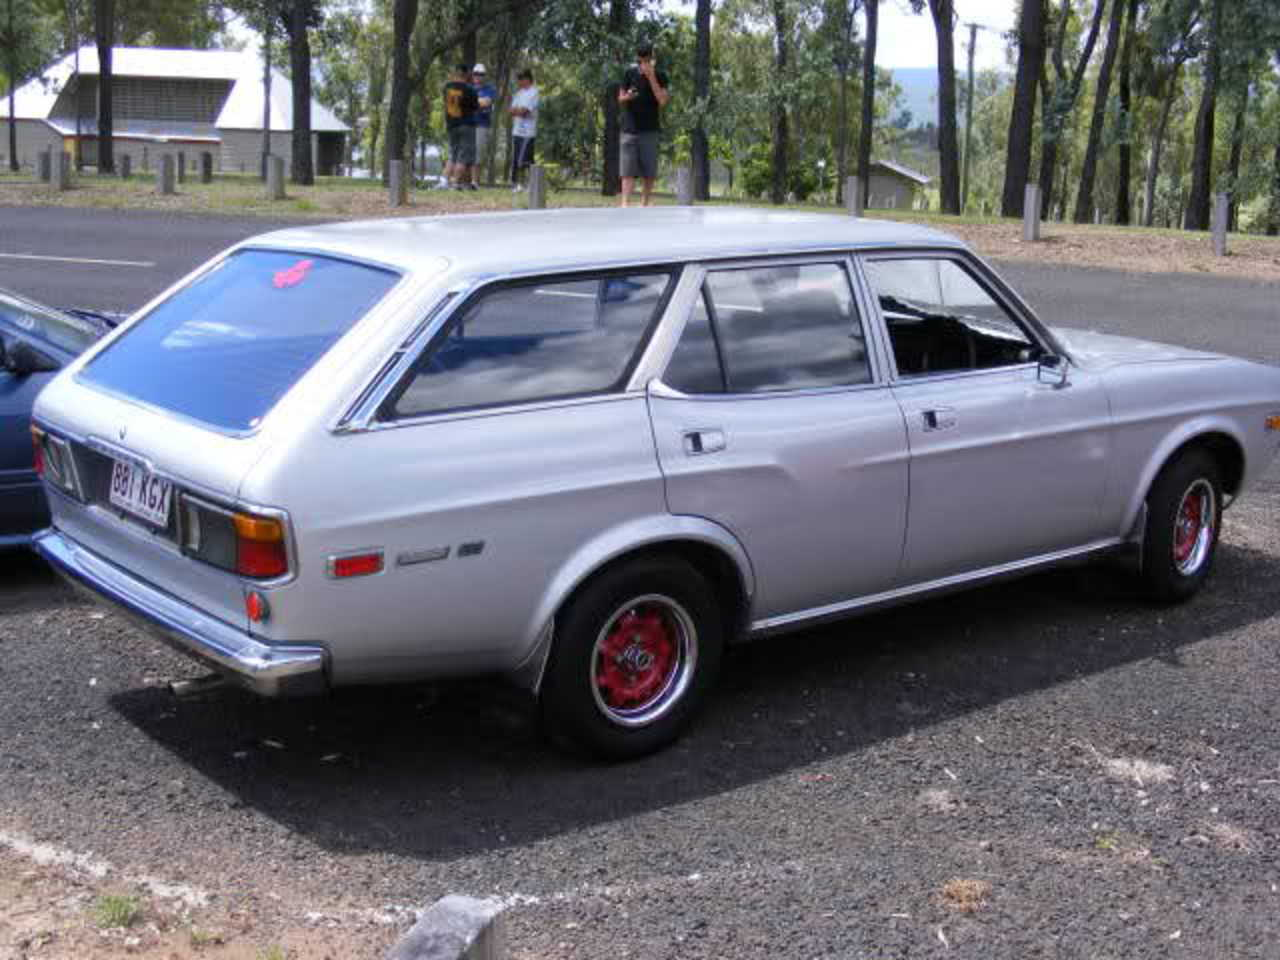 Just spotted this on JNC, a 1975 Mazda 929 wagon, looks stunning